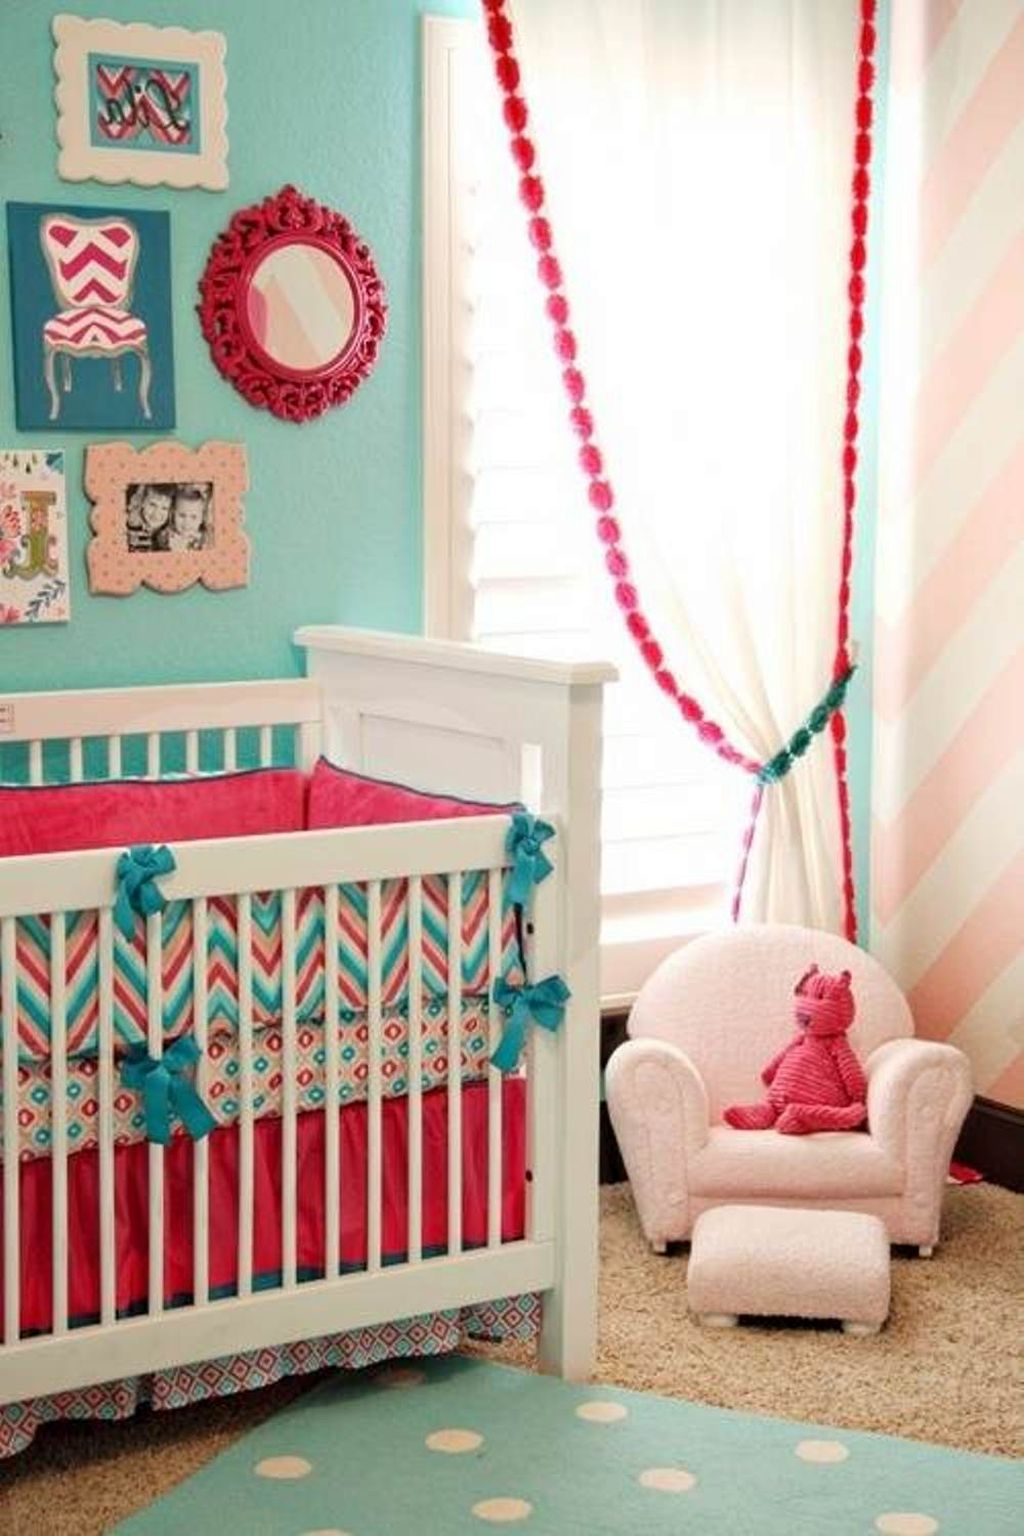 20 cute baby girl bedding ideas for your little angel Baby girl room ideas